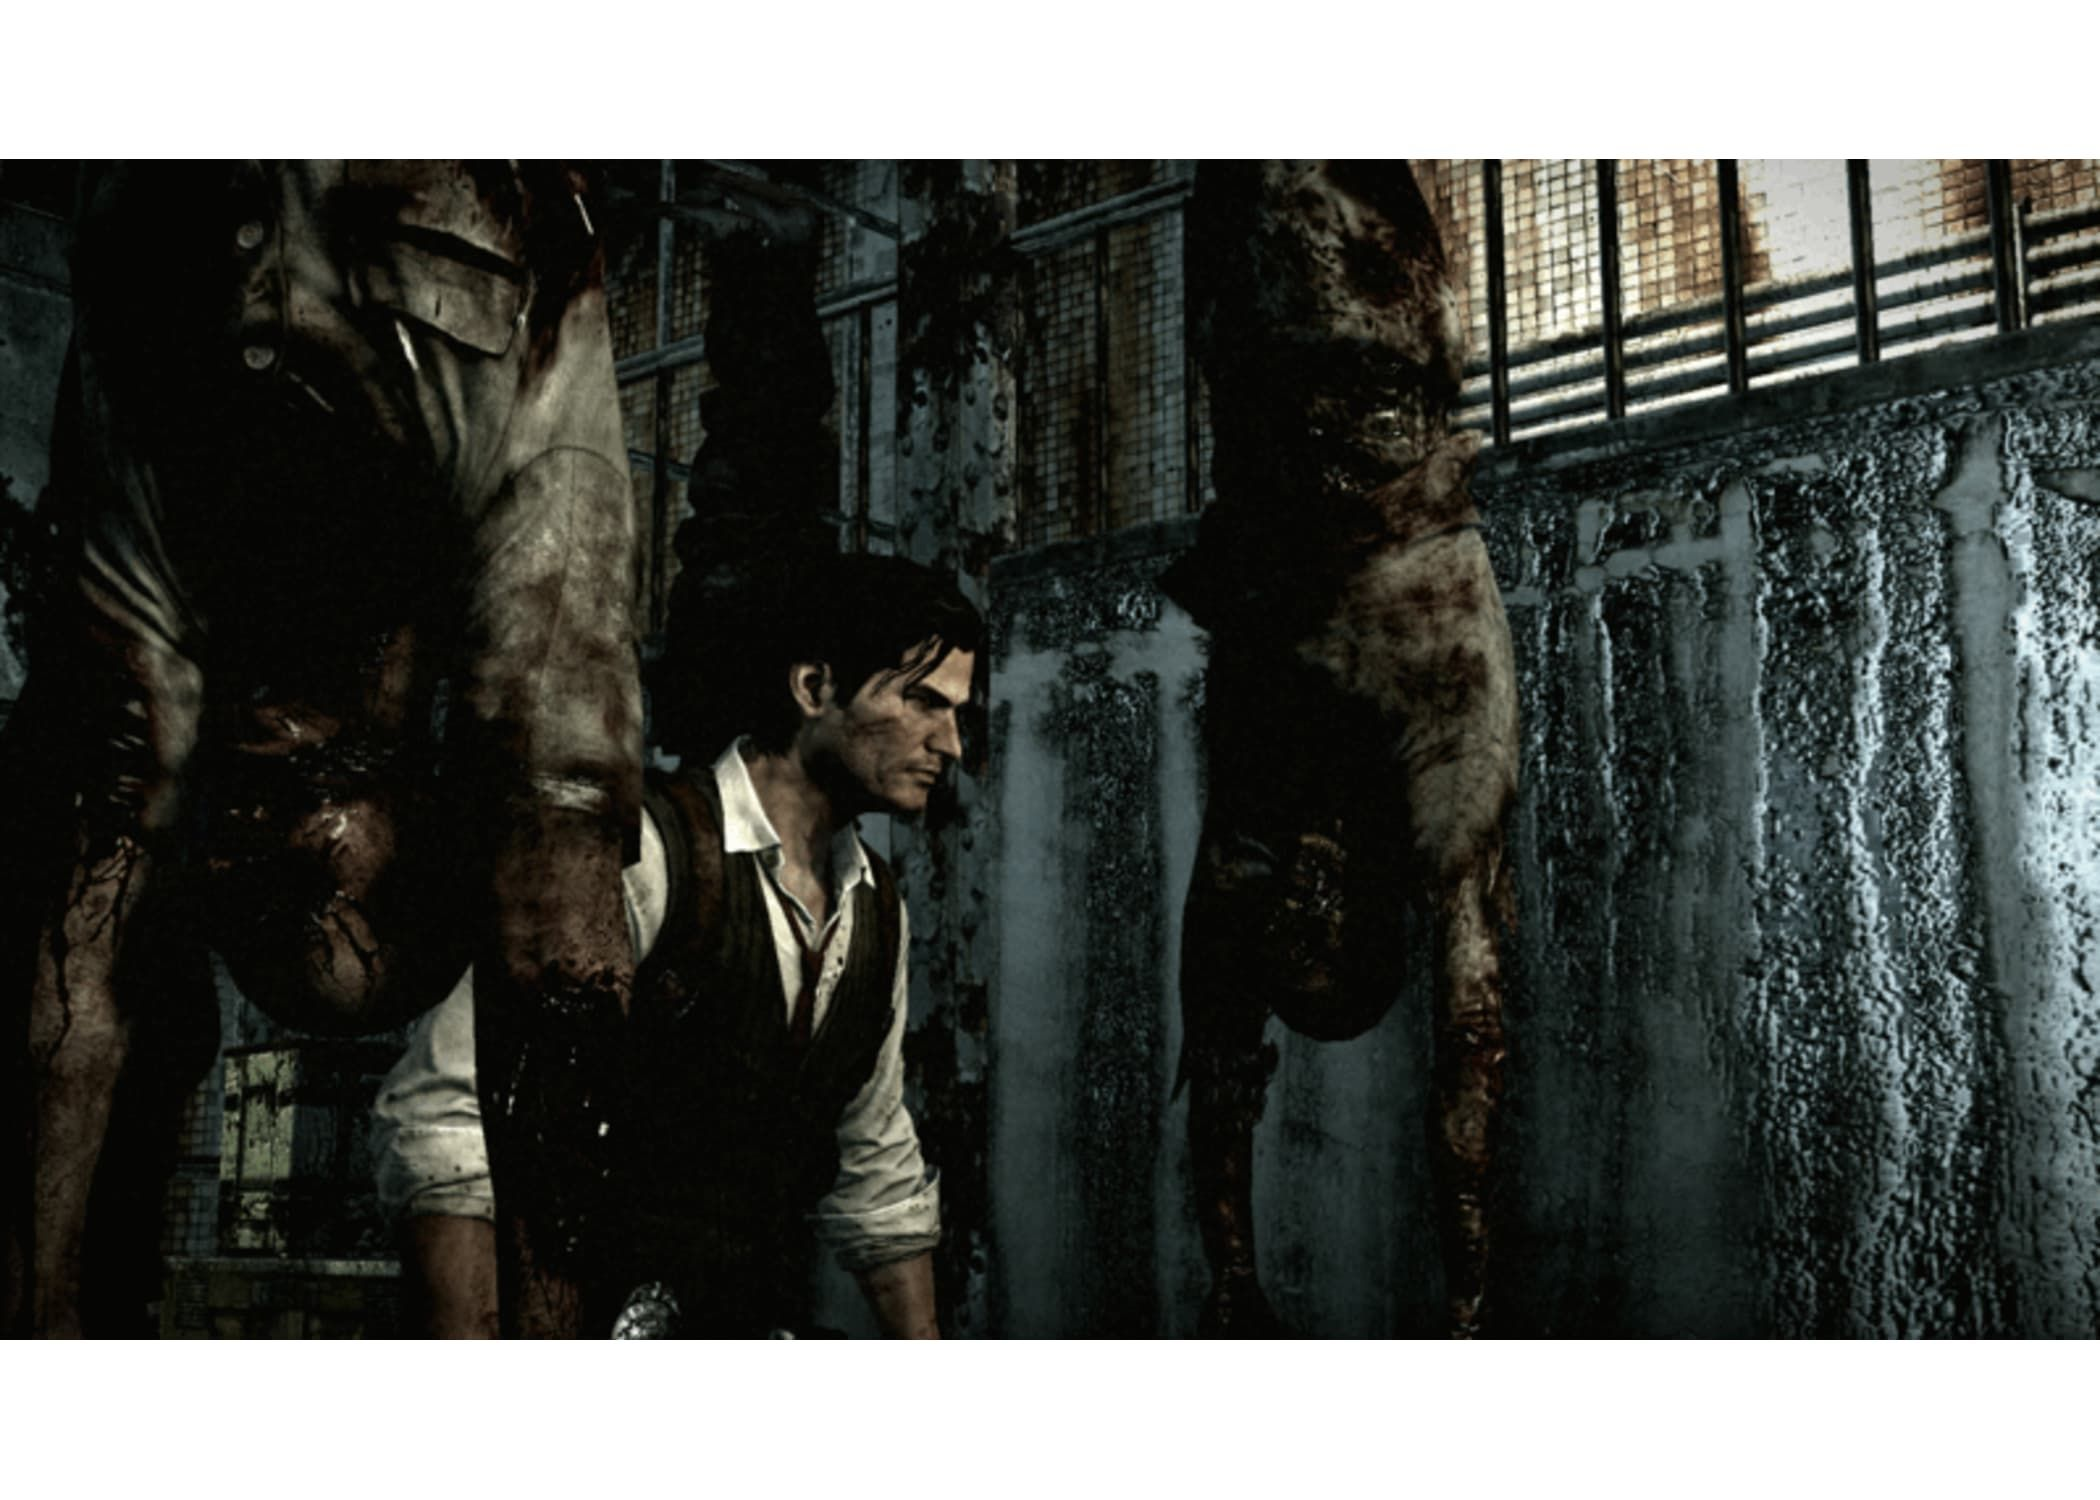 Buy The Evil Within Limited Edition on Xbox One  GAME #Affiliate , #affiliate, #Limited, #Evil, #Buy, #GAME, #Xbox